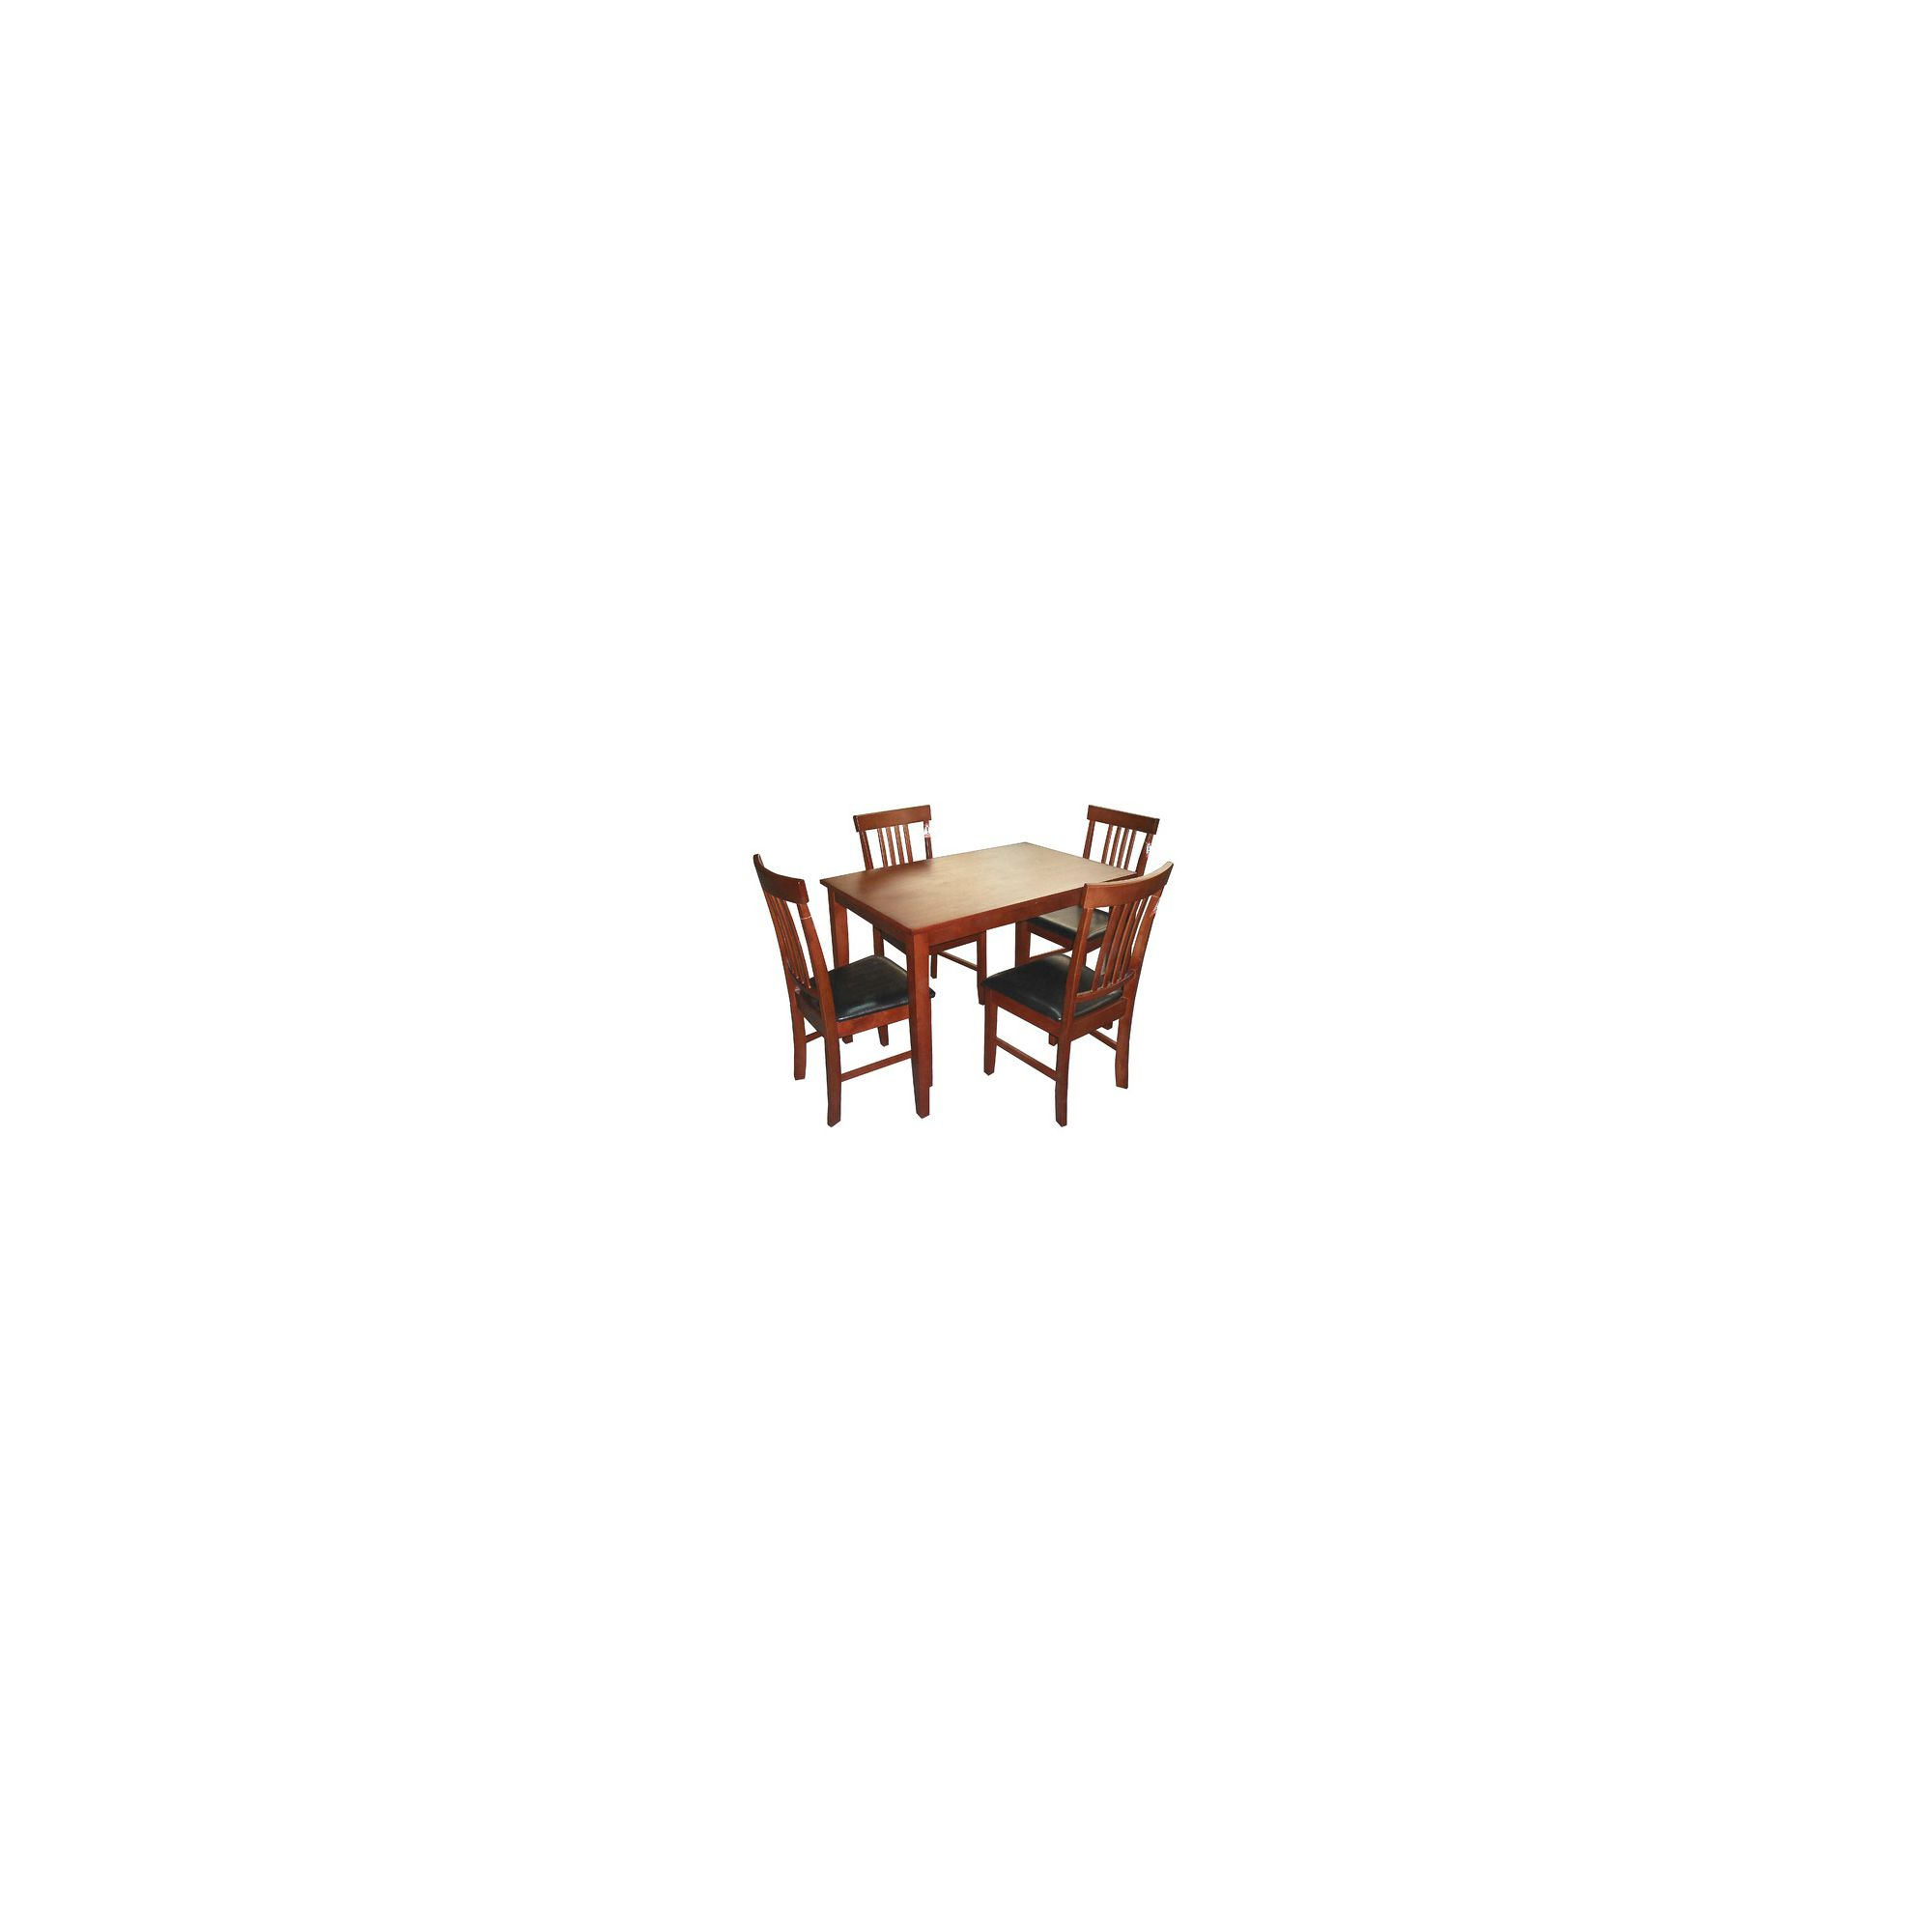 Heartlands Massa 4 Chair Dining Set - Large Table / 6 Chairs - Mahogany at Tesco Direct